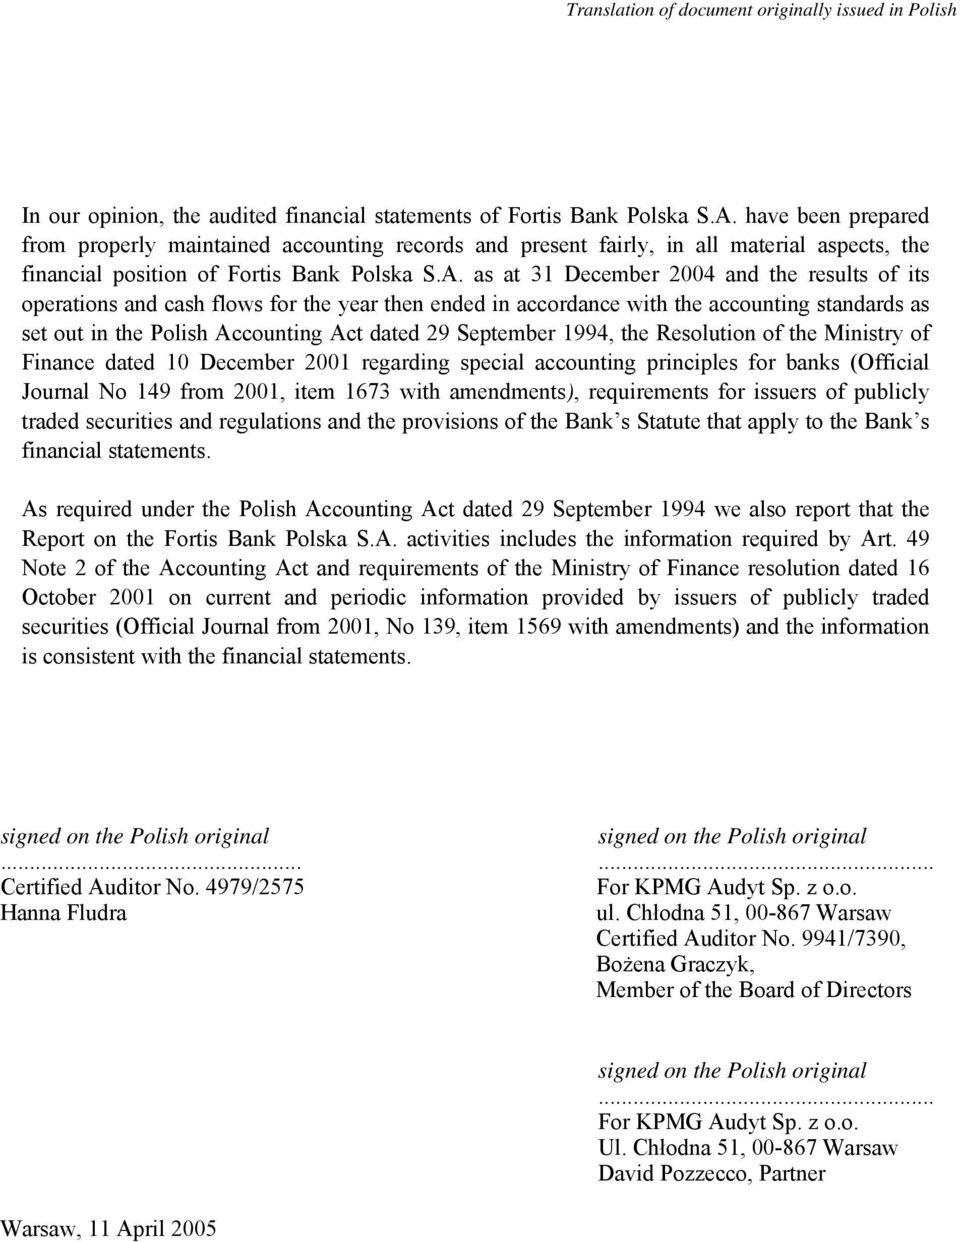 Resolution of the Ministry of Finance dated 10 December 2001 regarding special accounting principles for banks (Official Journal No 149 from 2001, item 1673 with amendments), requirements for issuers